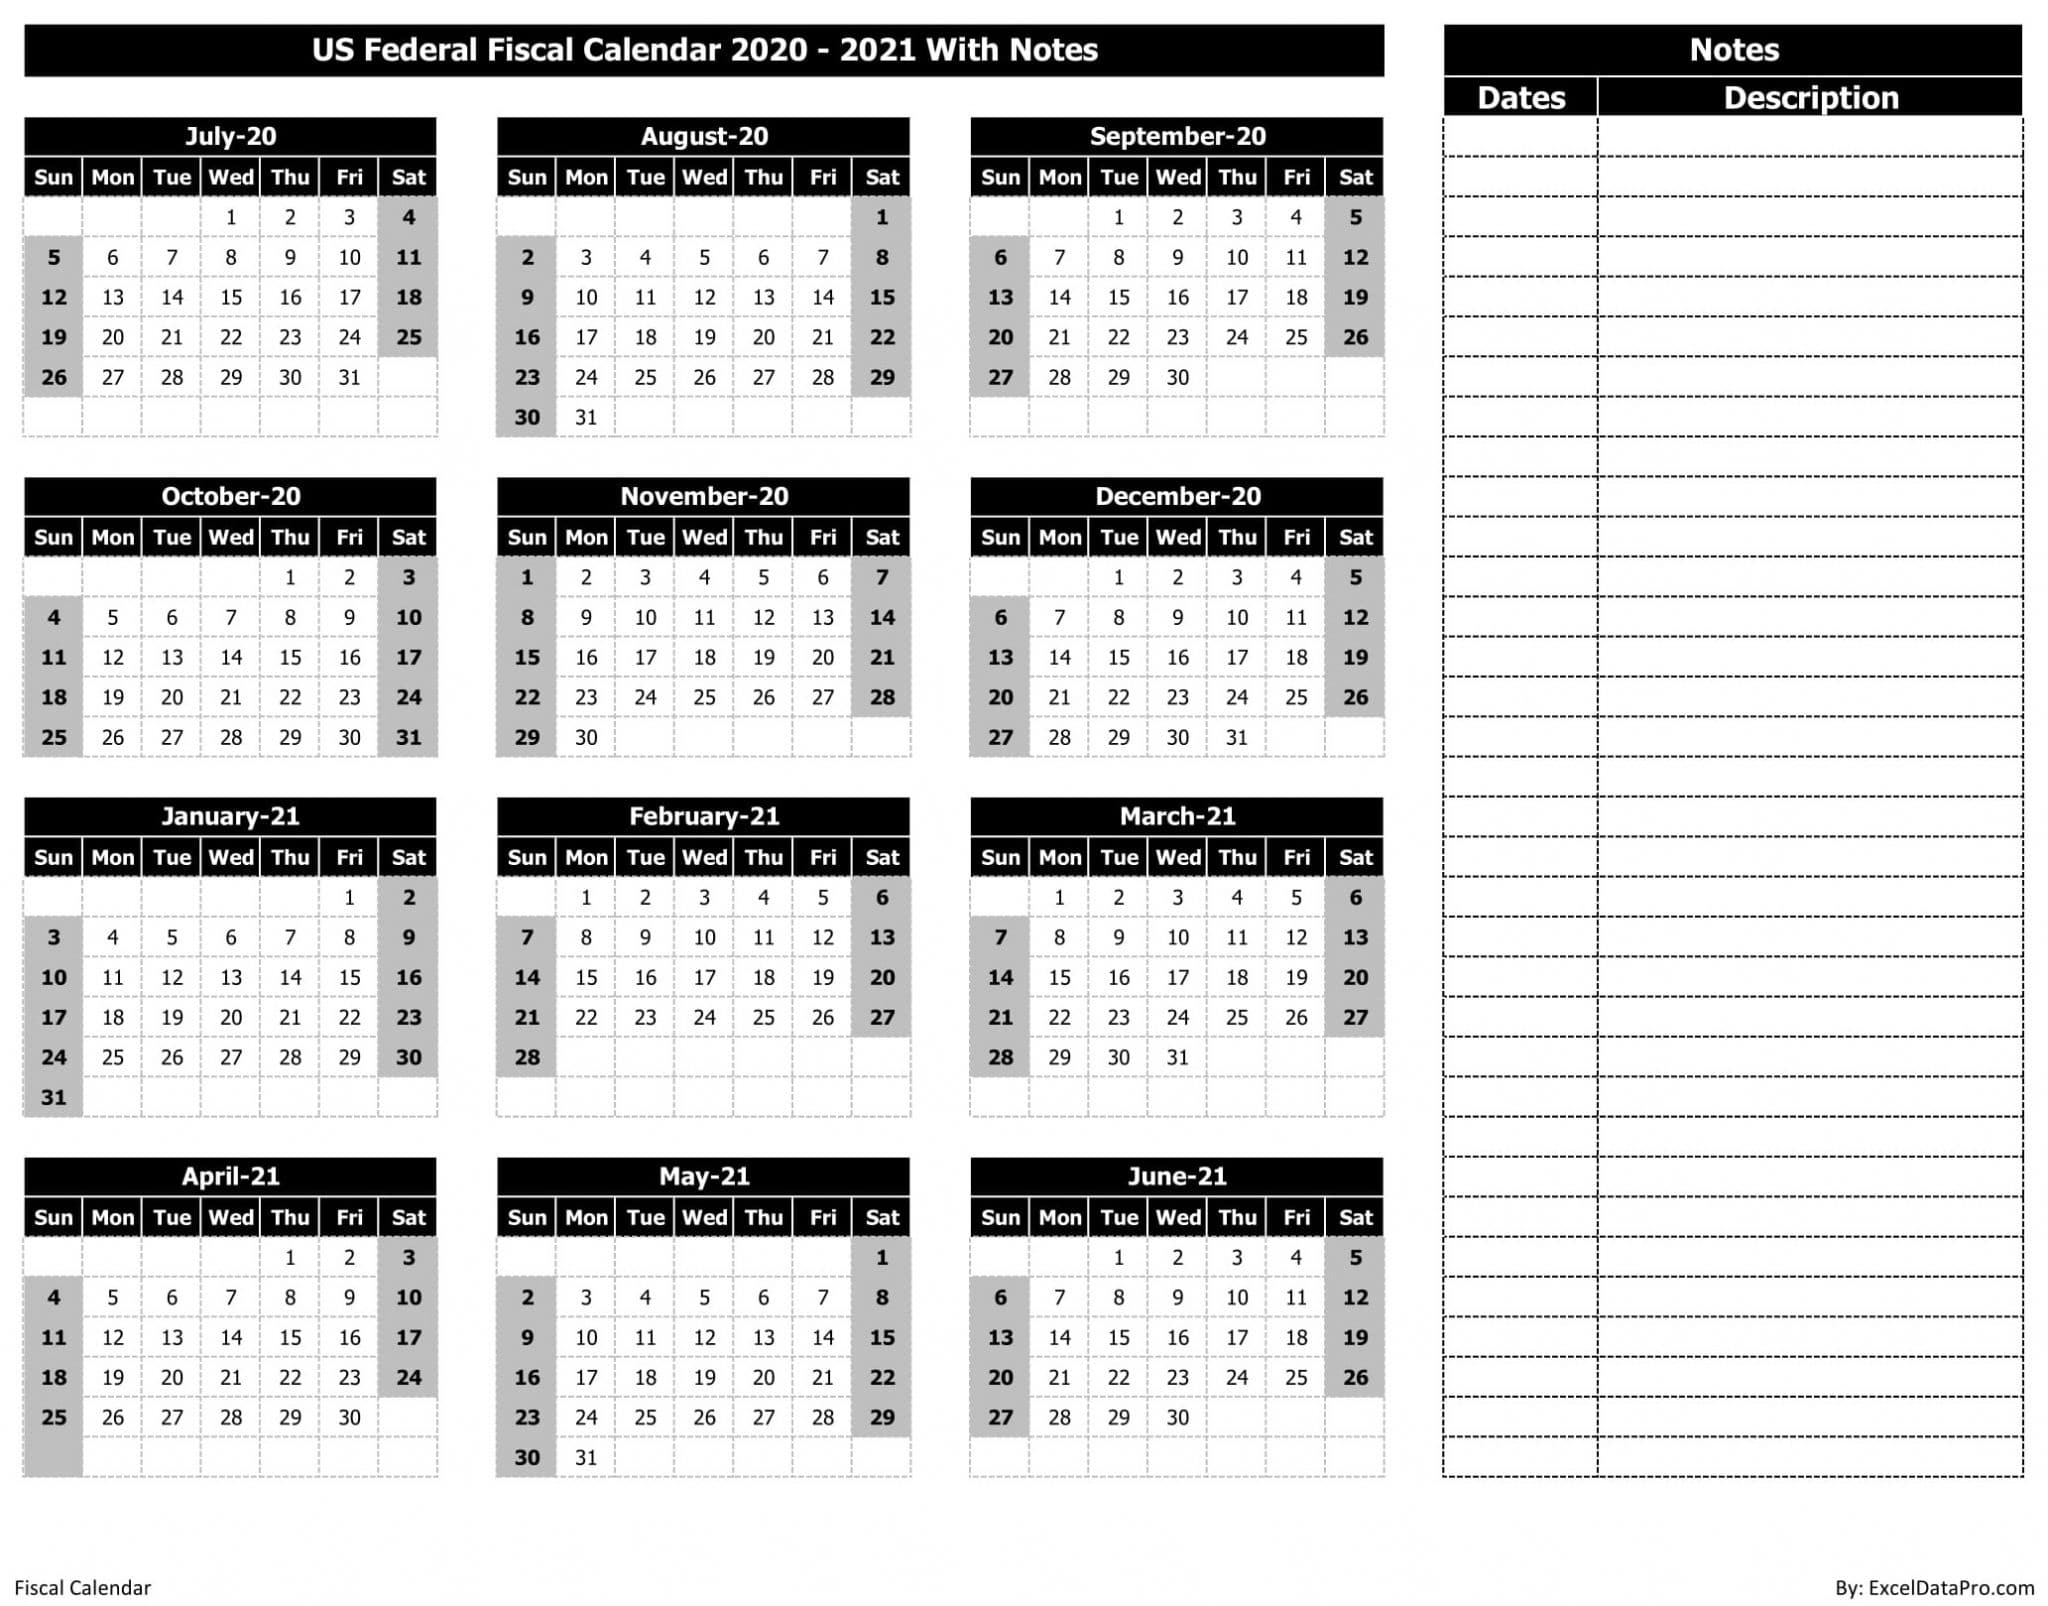 US Federal Fiscal Calendar 2020-21 With Notes - BnW